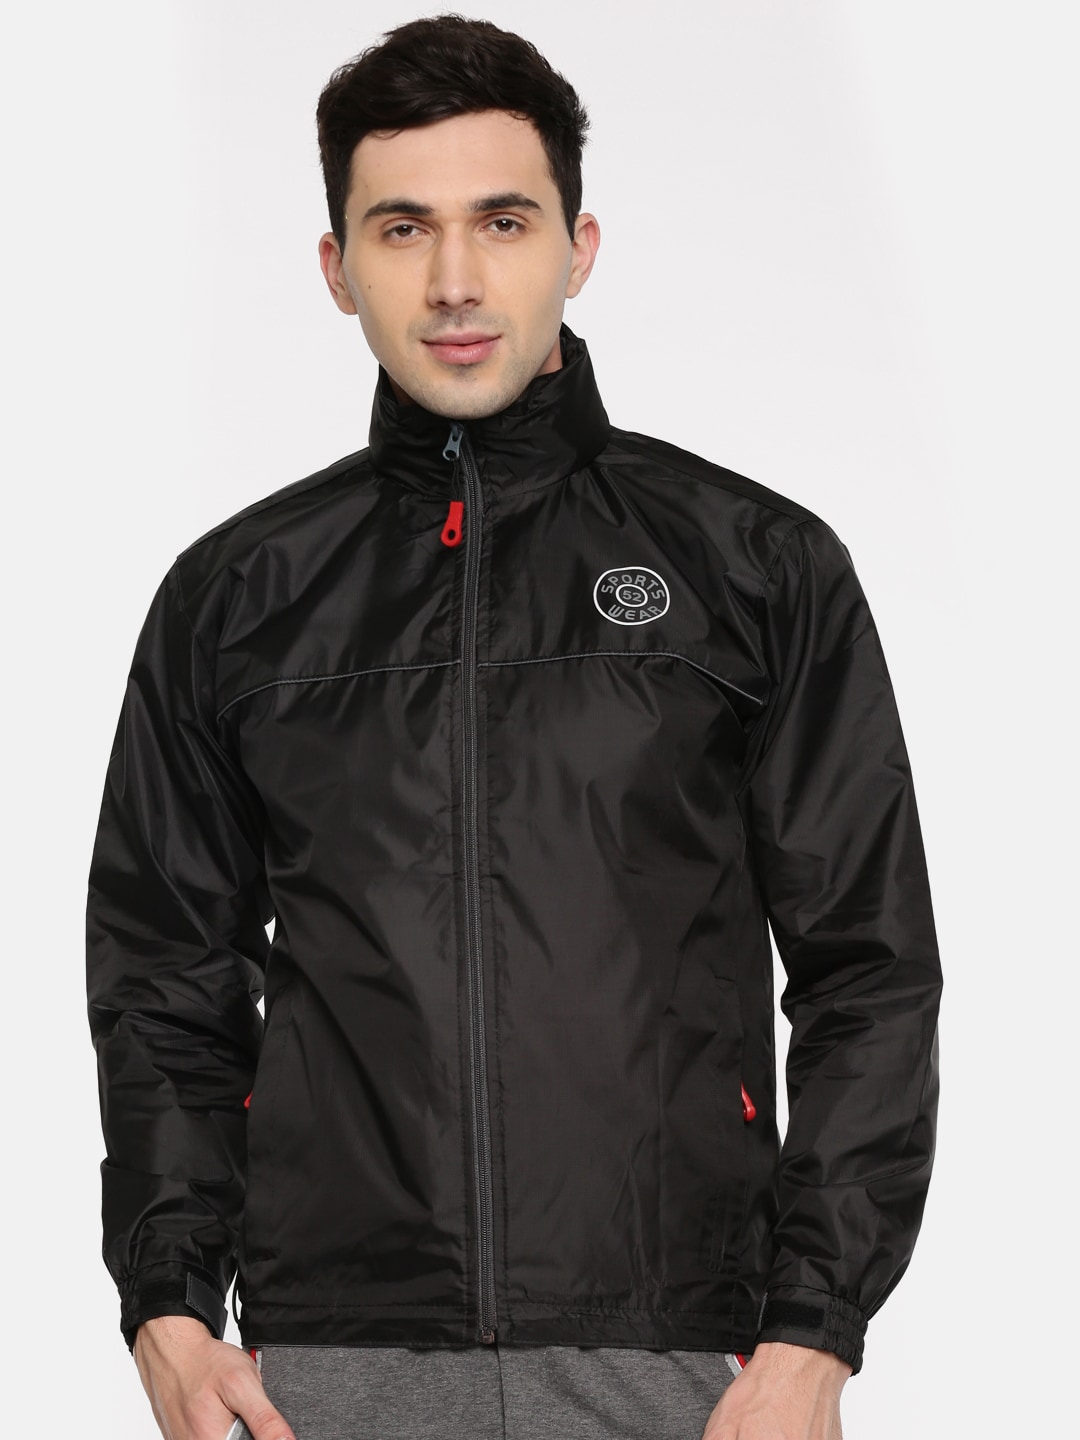 6c6e93c9129c Raincoat - Buy Raincoats For Men